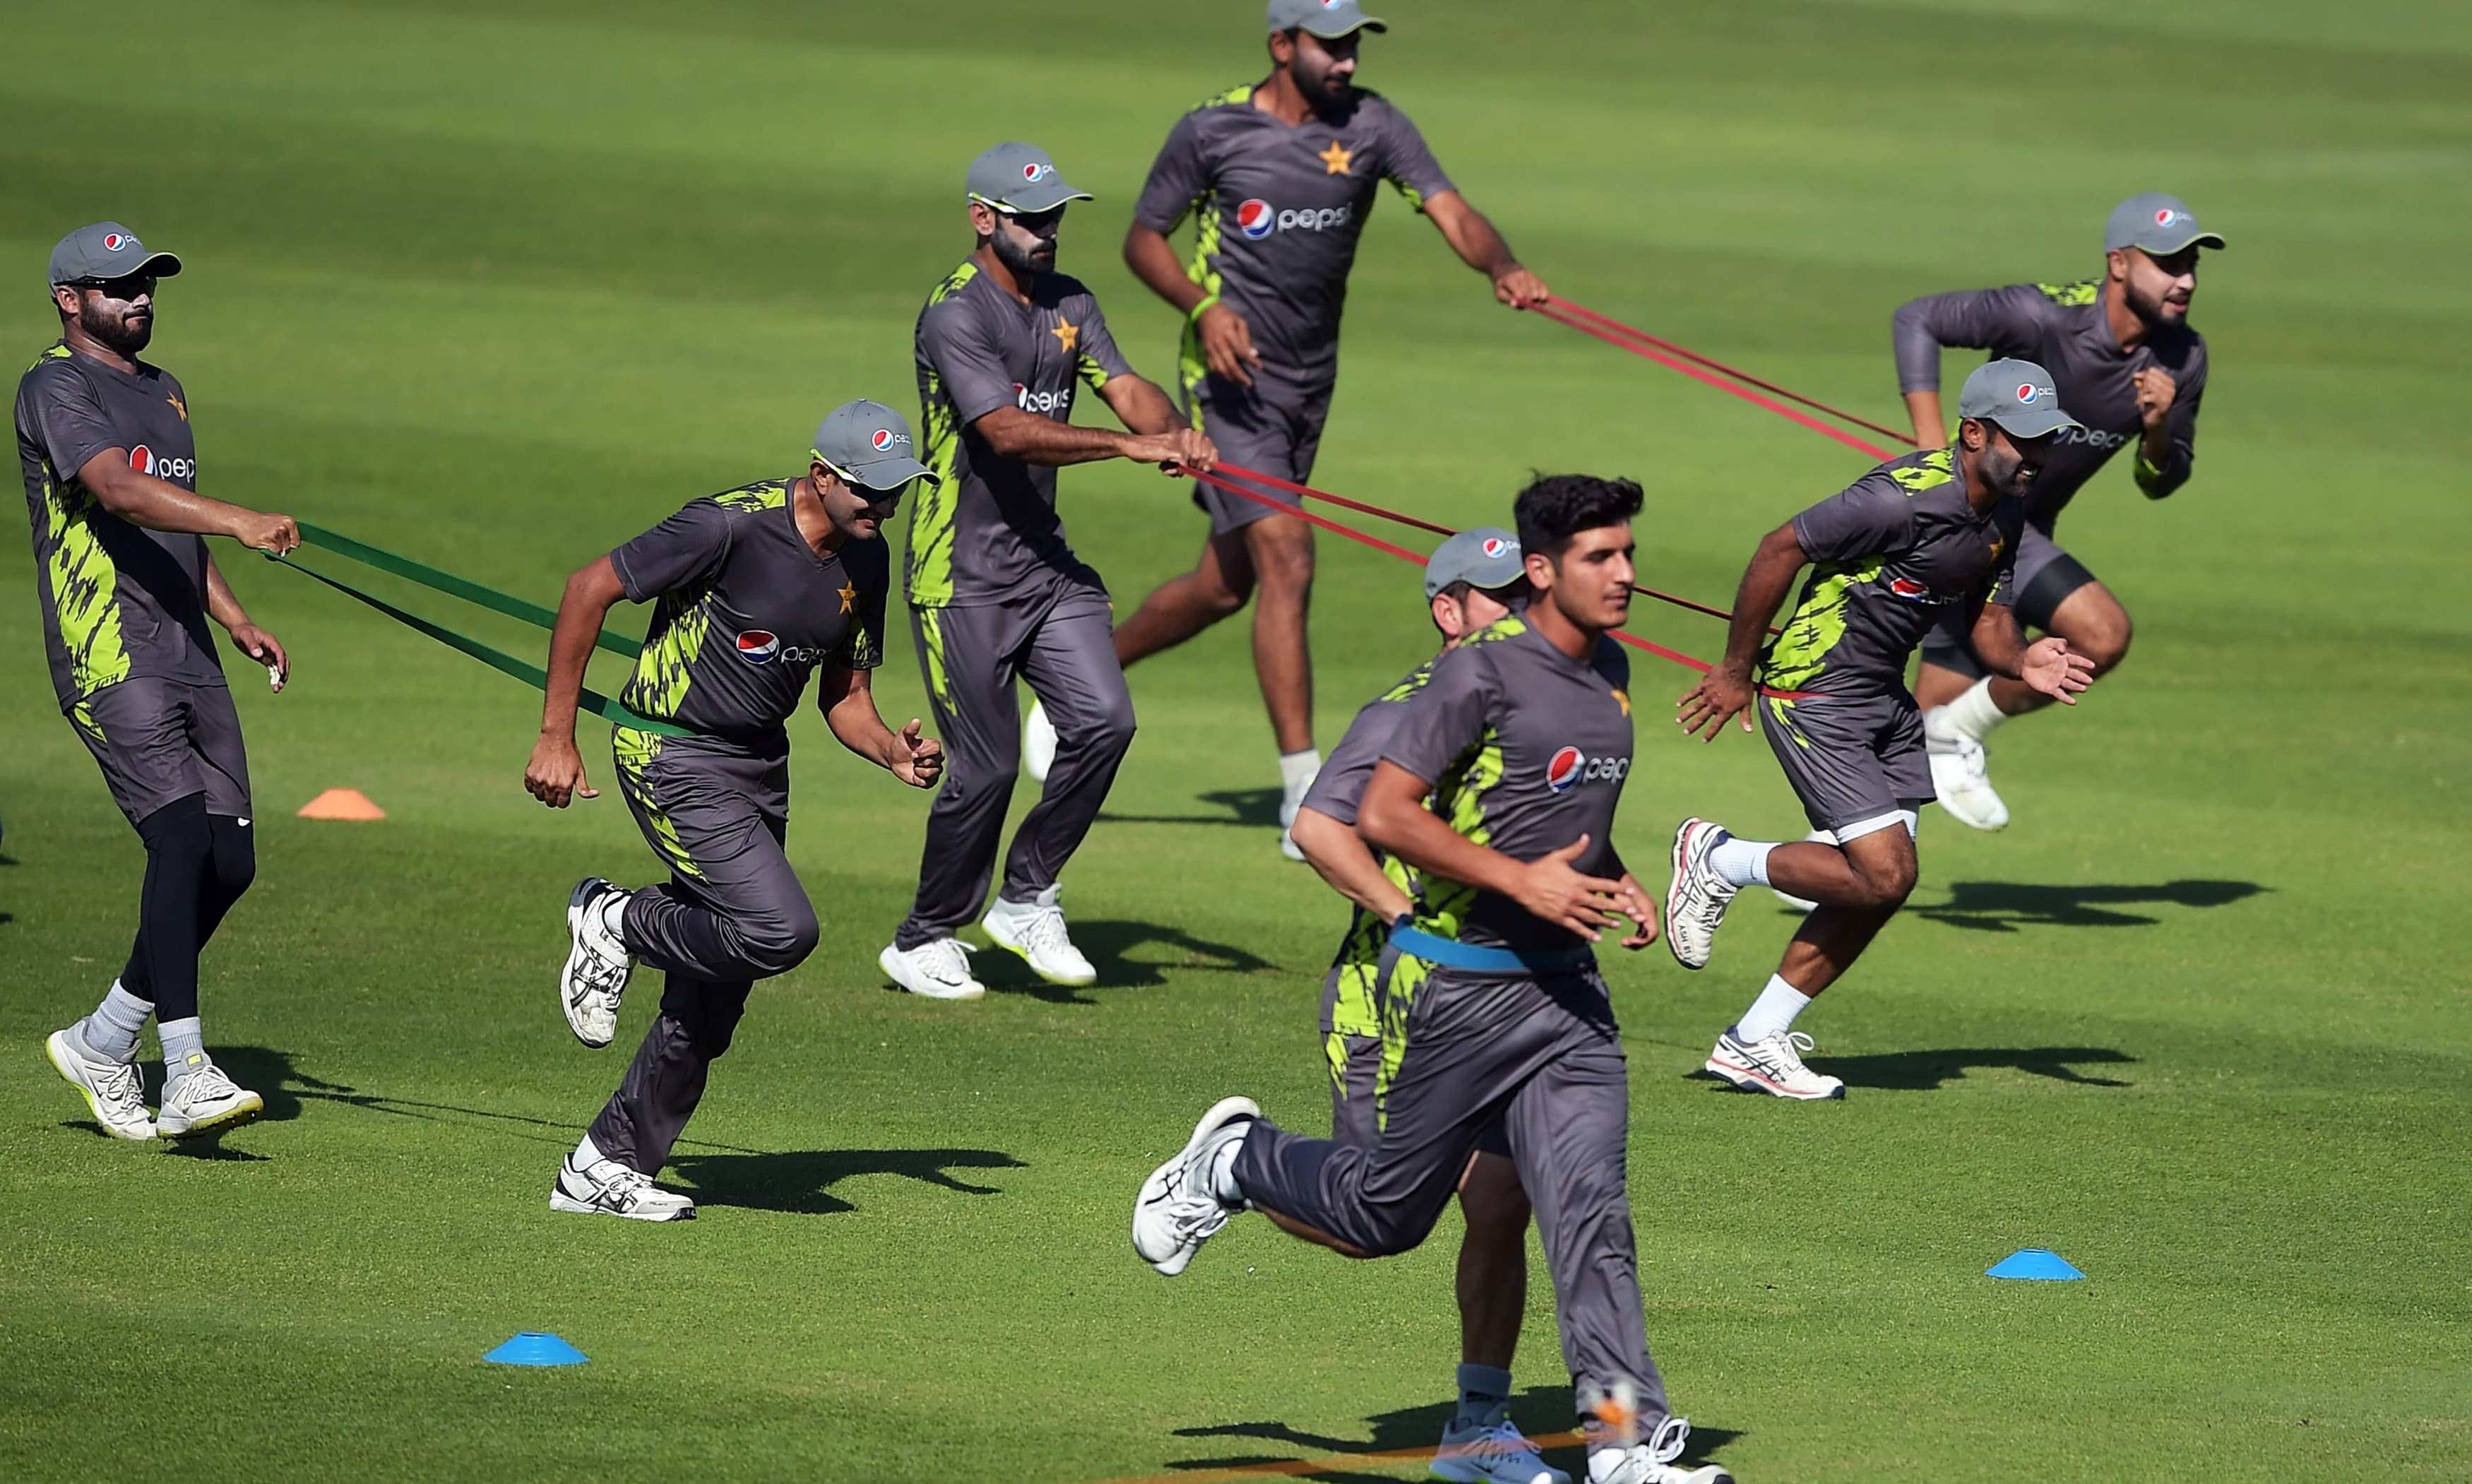 Pakistani cricketers take part in a practice session at the Zayed International Cricket Stadium in Abu Dhabi. —AFP